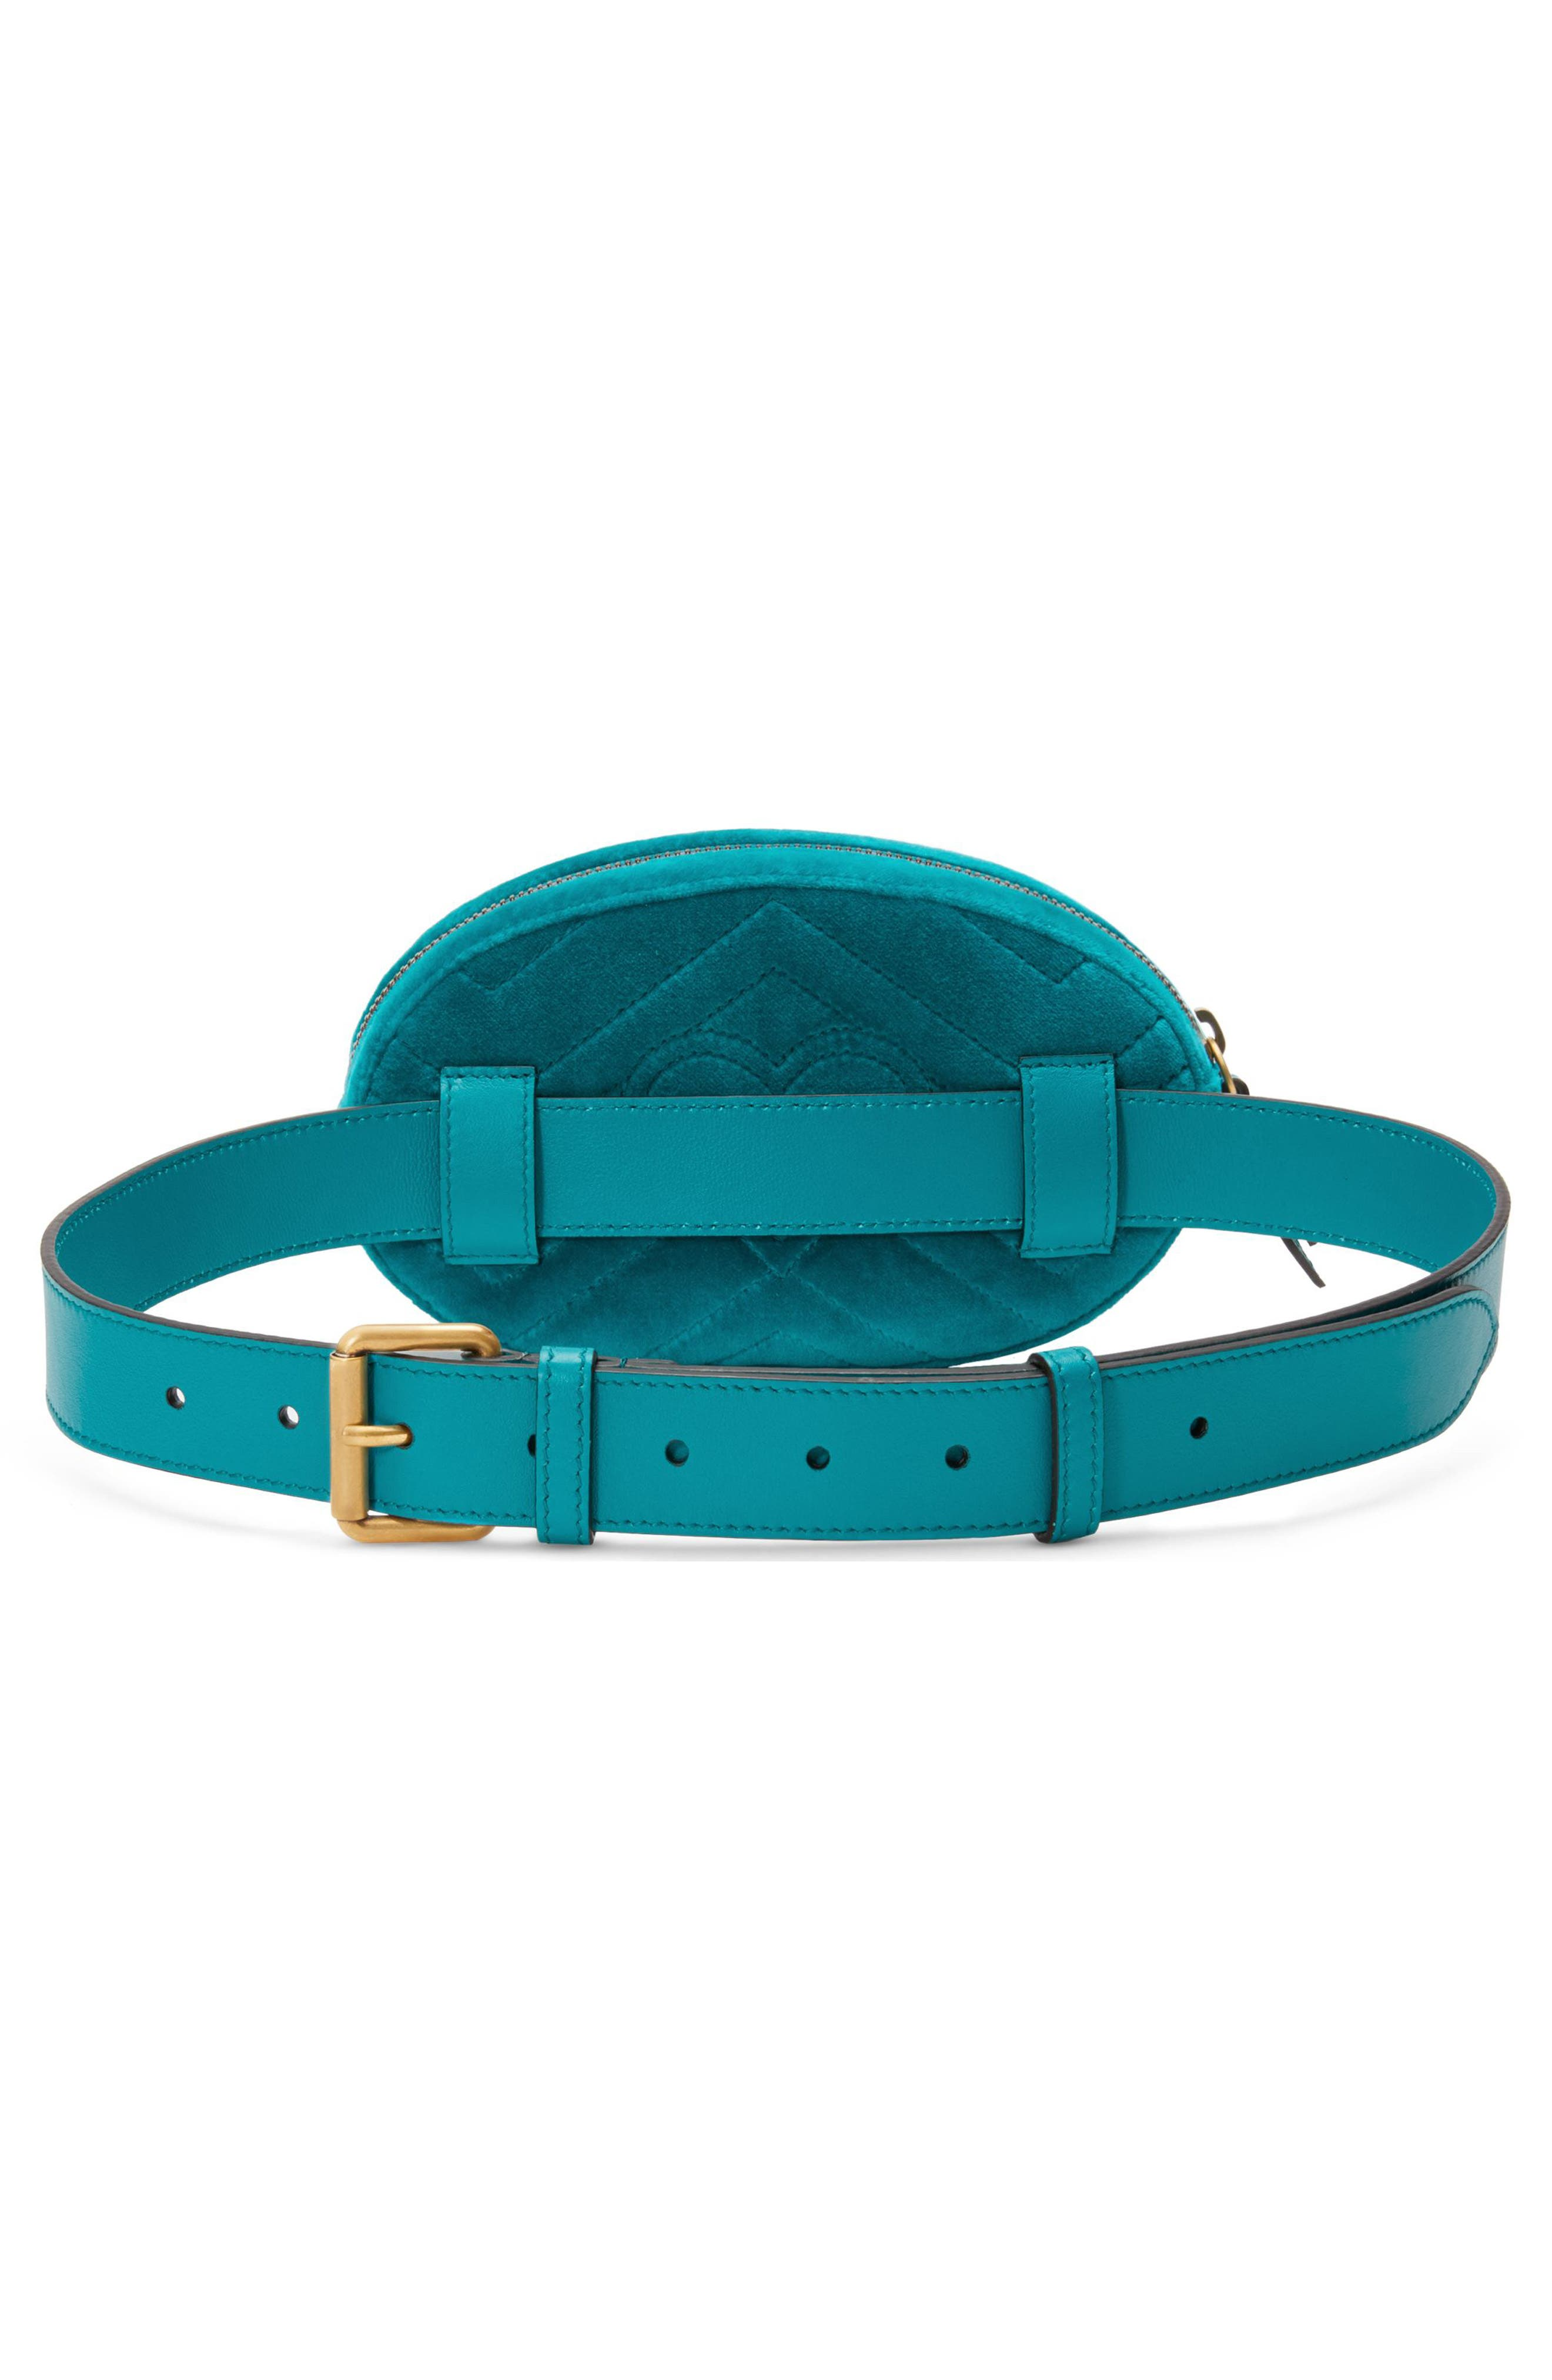 GG Marmont 2.0 Embroidered Velvet Belt Bag,                             Alternate thumbnail 2, color,                             440